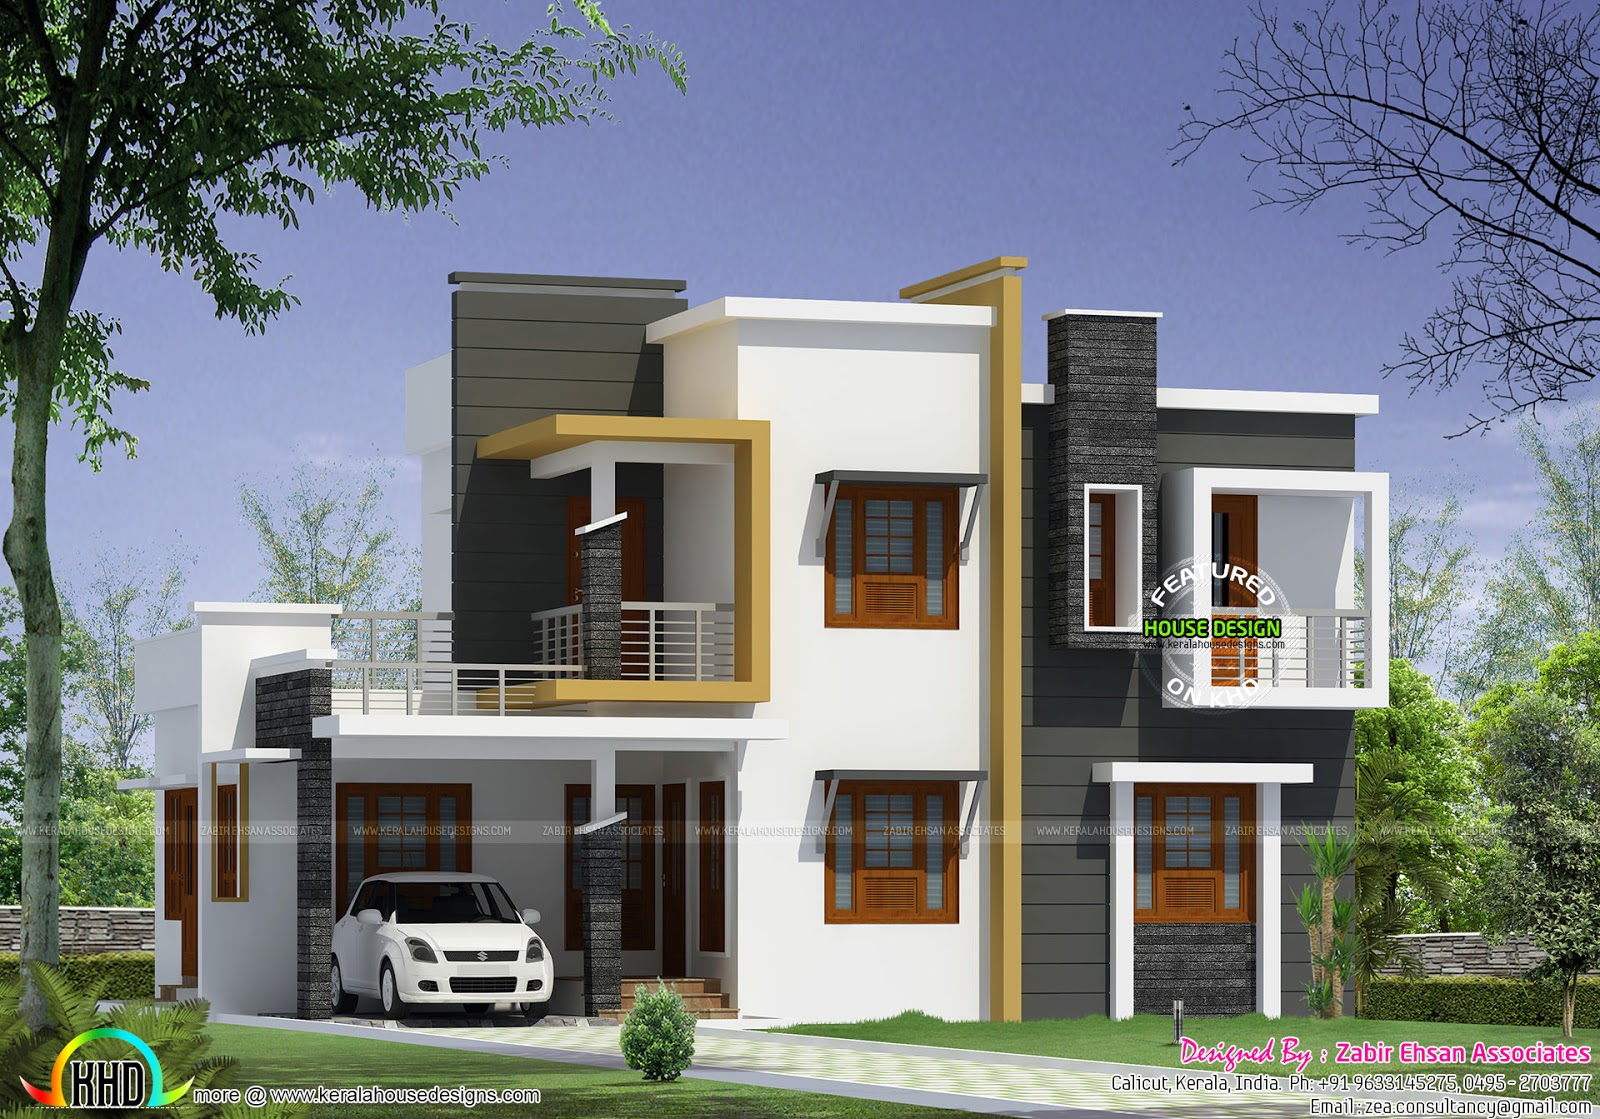 Box type modern house plan kerala home design and floor plans - Contemporary home ...